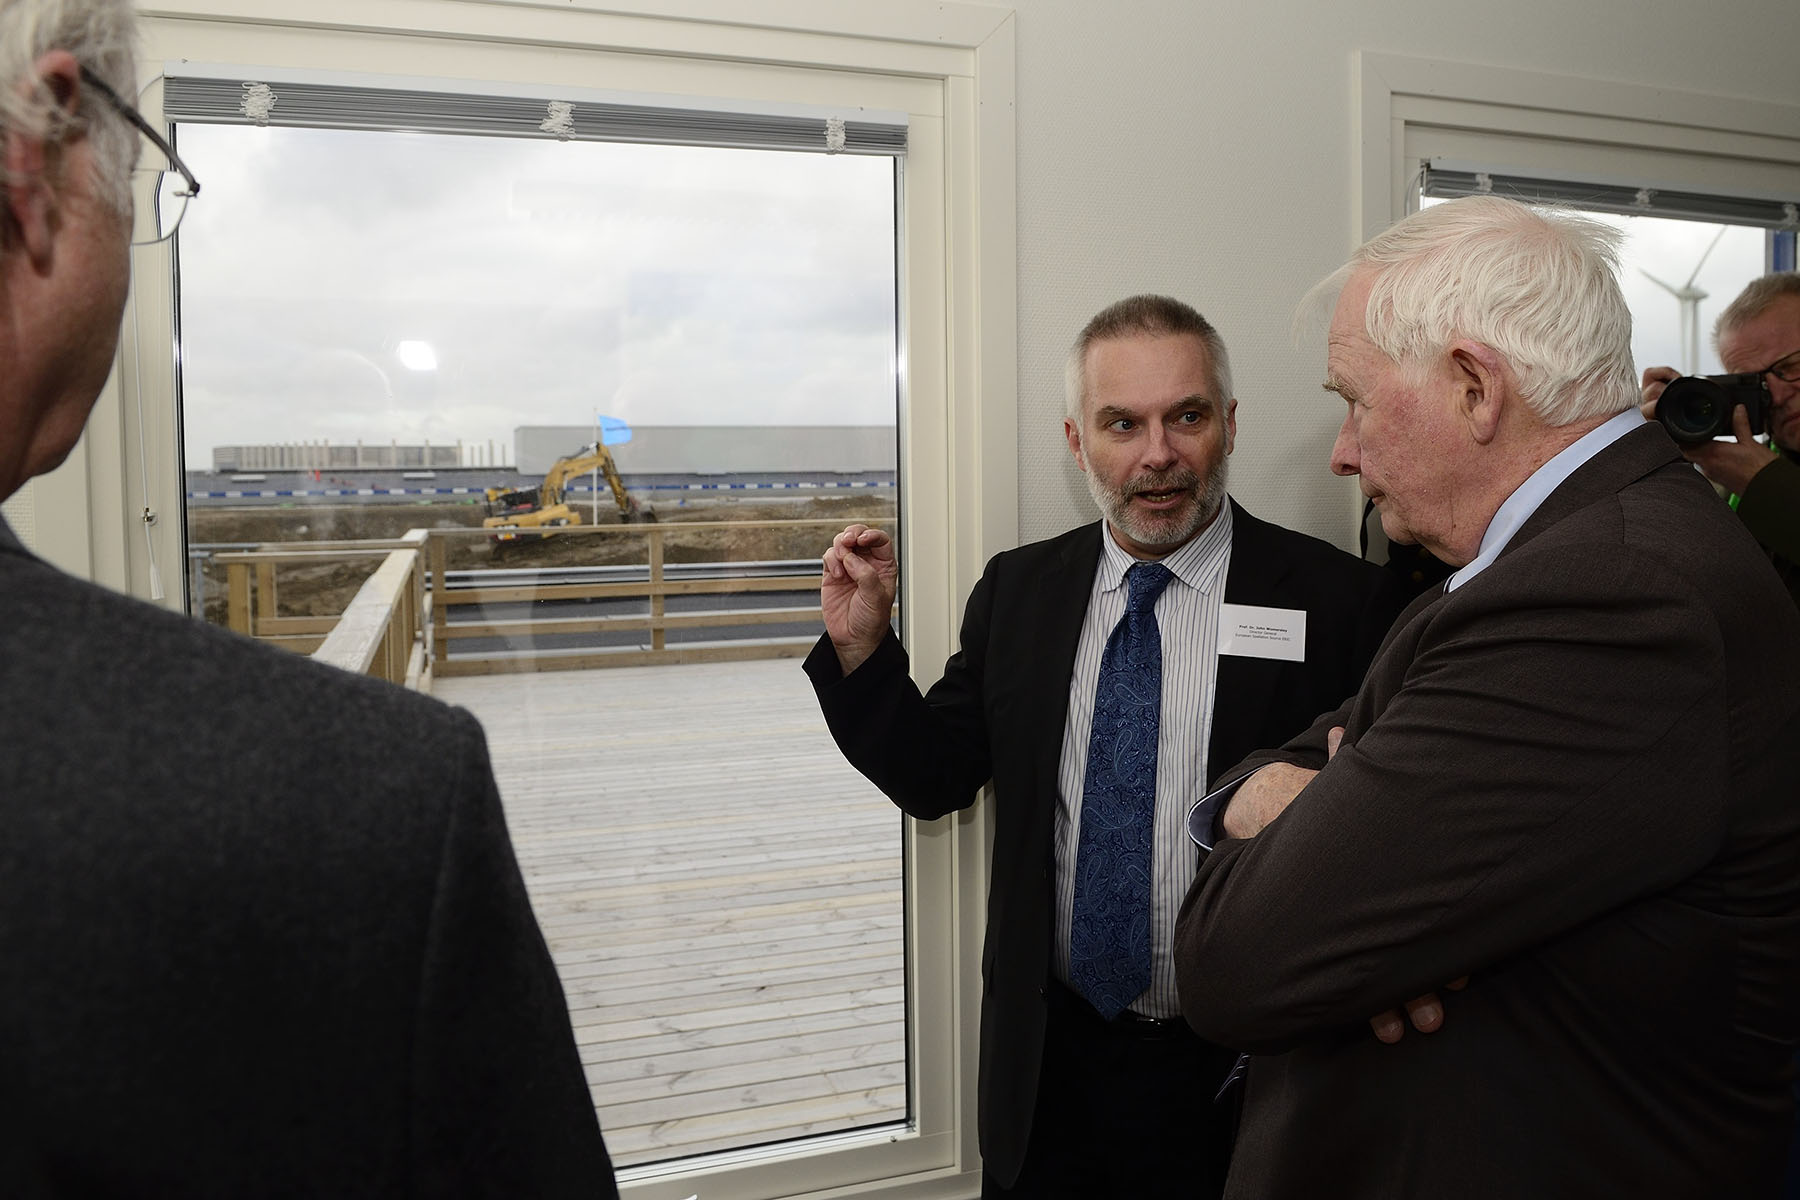 In the afternoon, the Governor General and the Canadian delegates travelled to Lund, where they visited the construction site of the European Spallation Source (ESS), one of the largest science infrastructure projects being built in Europe today based on the world's most powerful neutron source.